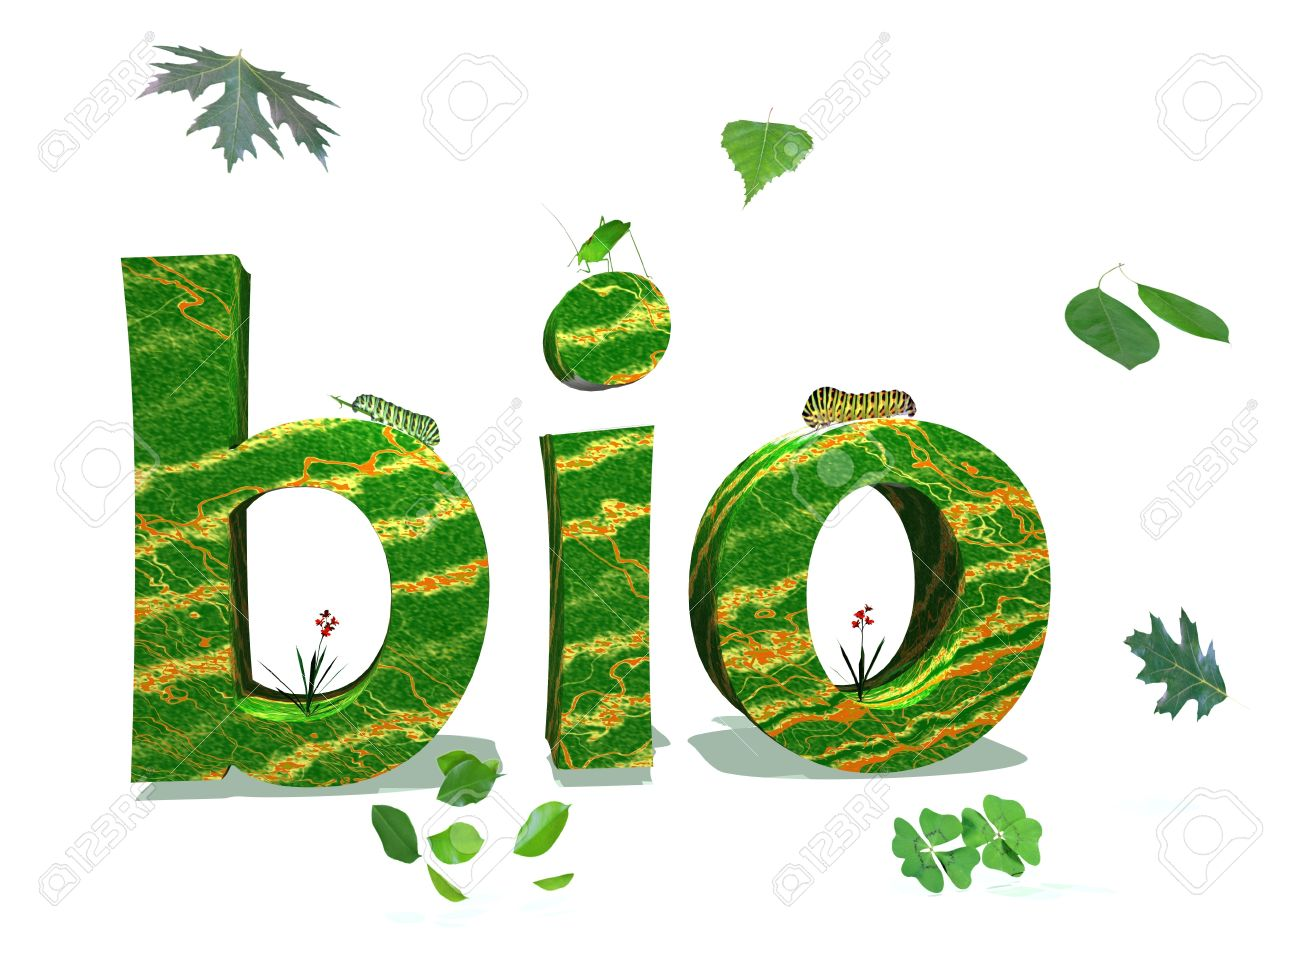 Bio letters in nature color surrounded by green leaves and insects in white background Stock Photo - 9662202